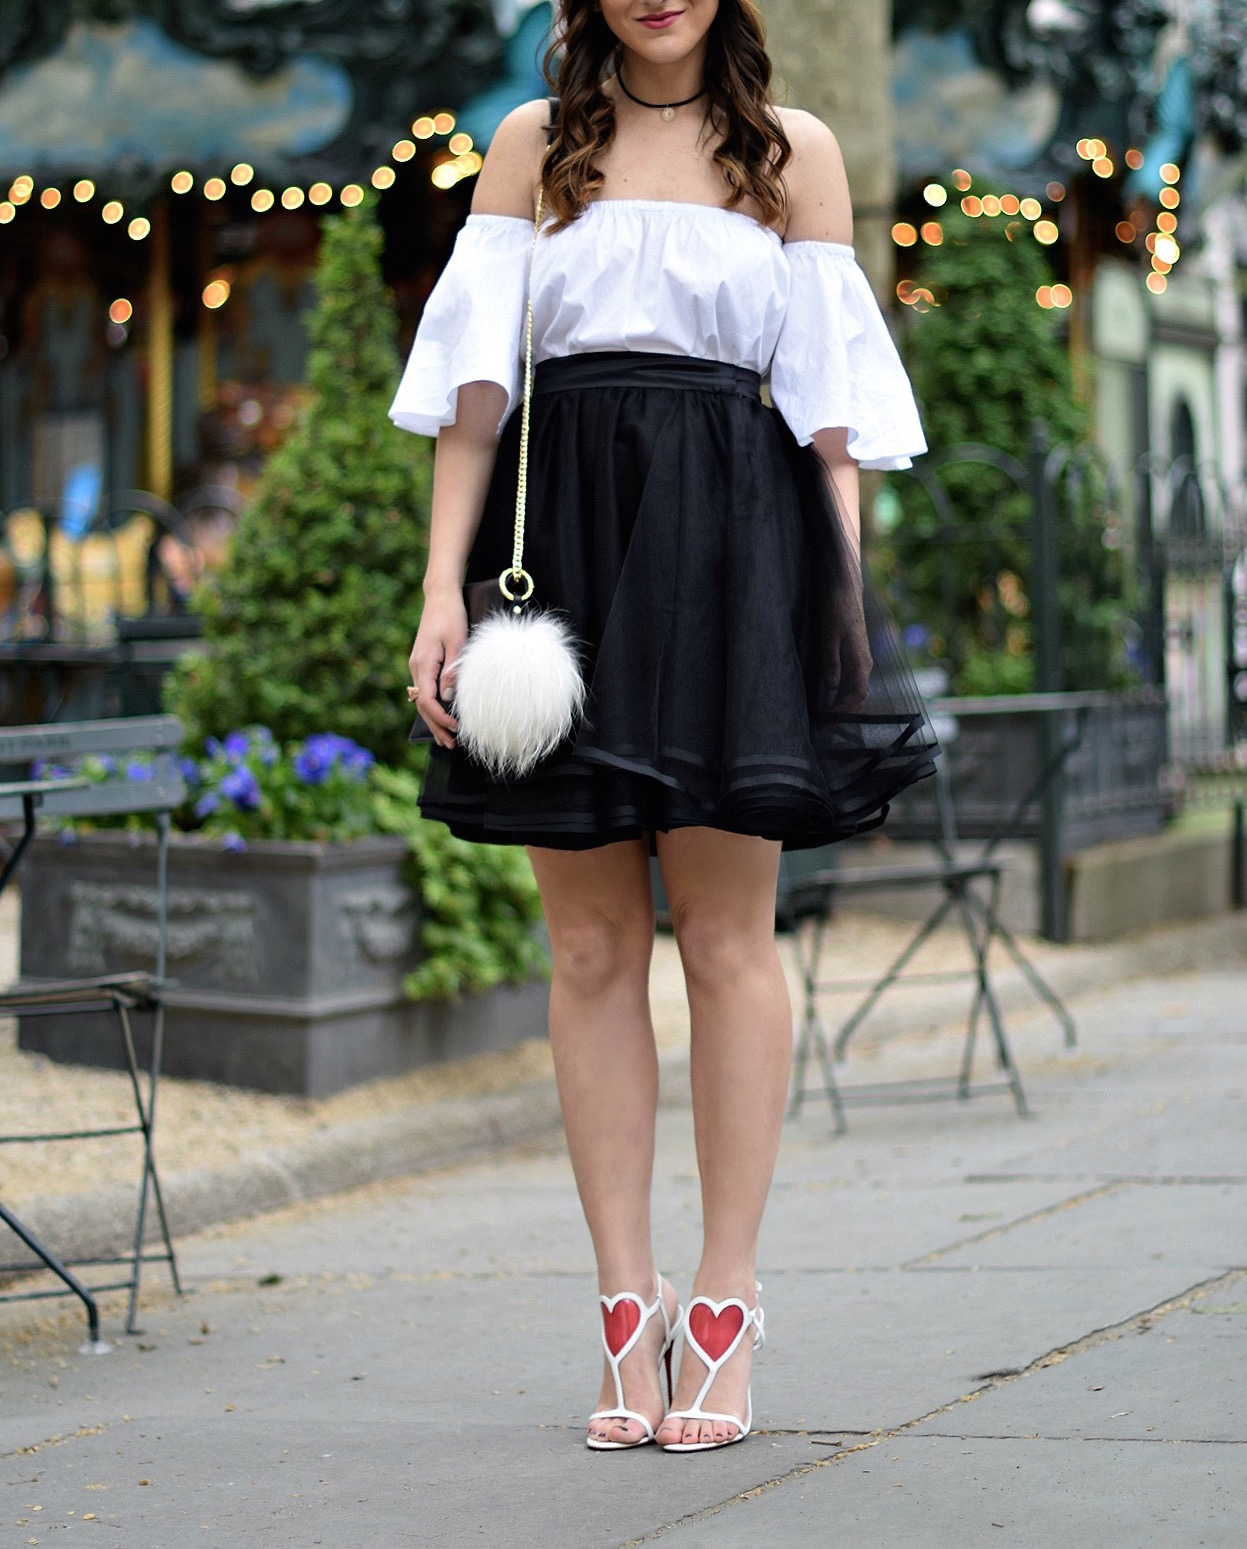 Naomy Stern Couture Custom Tulle Skirt White Heart Louboutins & Love Fashion Blog Esther Santer NYC Street Style Blogger Christian Louboutin Outfit OOTD Elegant Model Photoshoot Fancy Cold Shoulder Ivanka Trump Black Purse Bag Pom Pom Choker Pretty.JPG